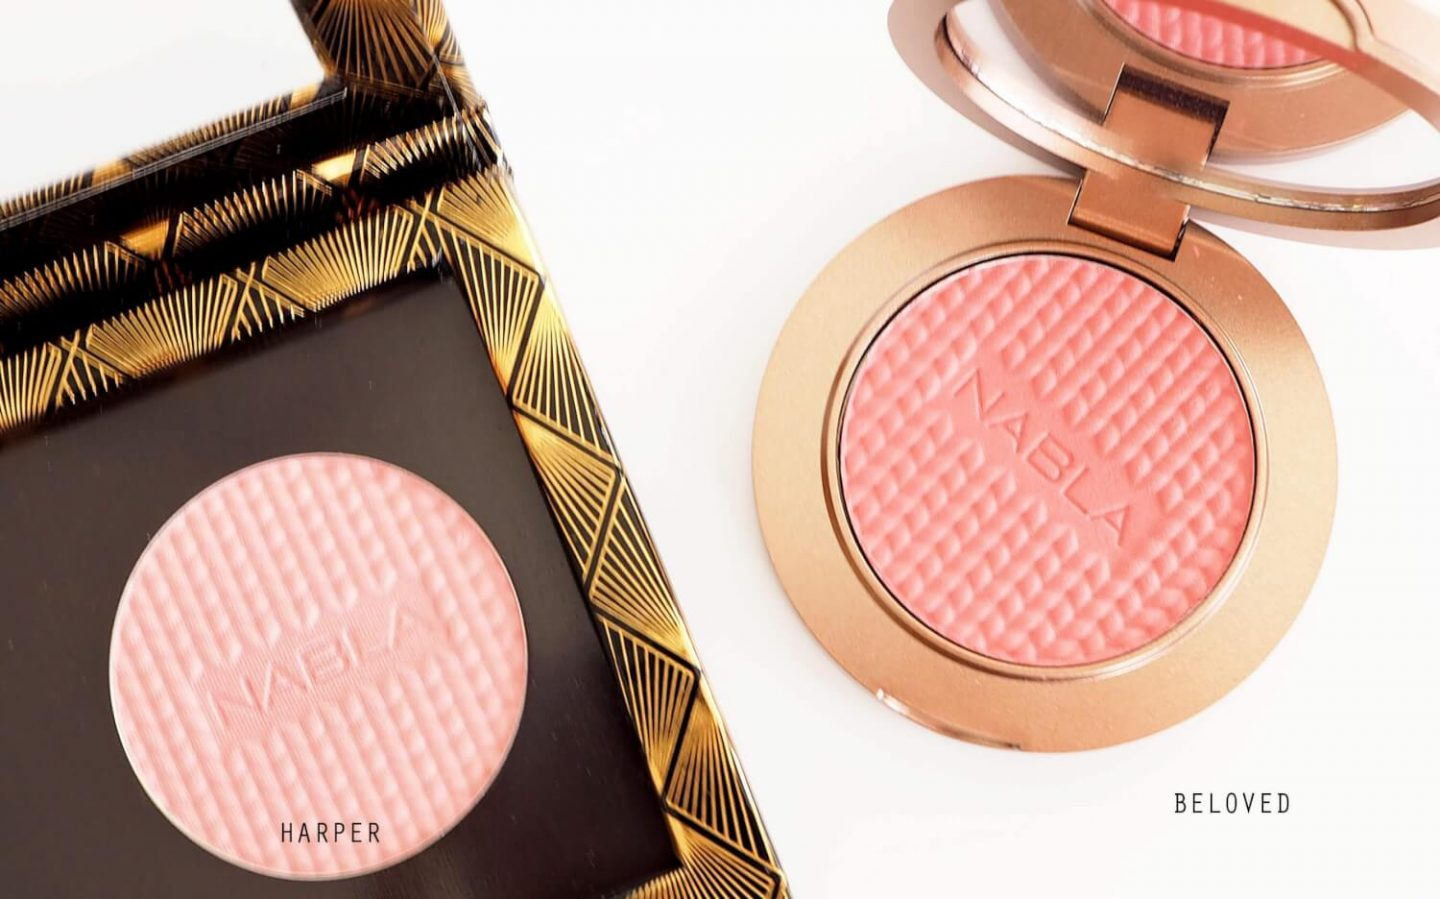 NABLA COSMETICS BLOSSOM BLUSHES | Róże Beloved i Harper